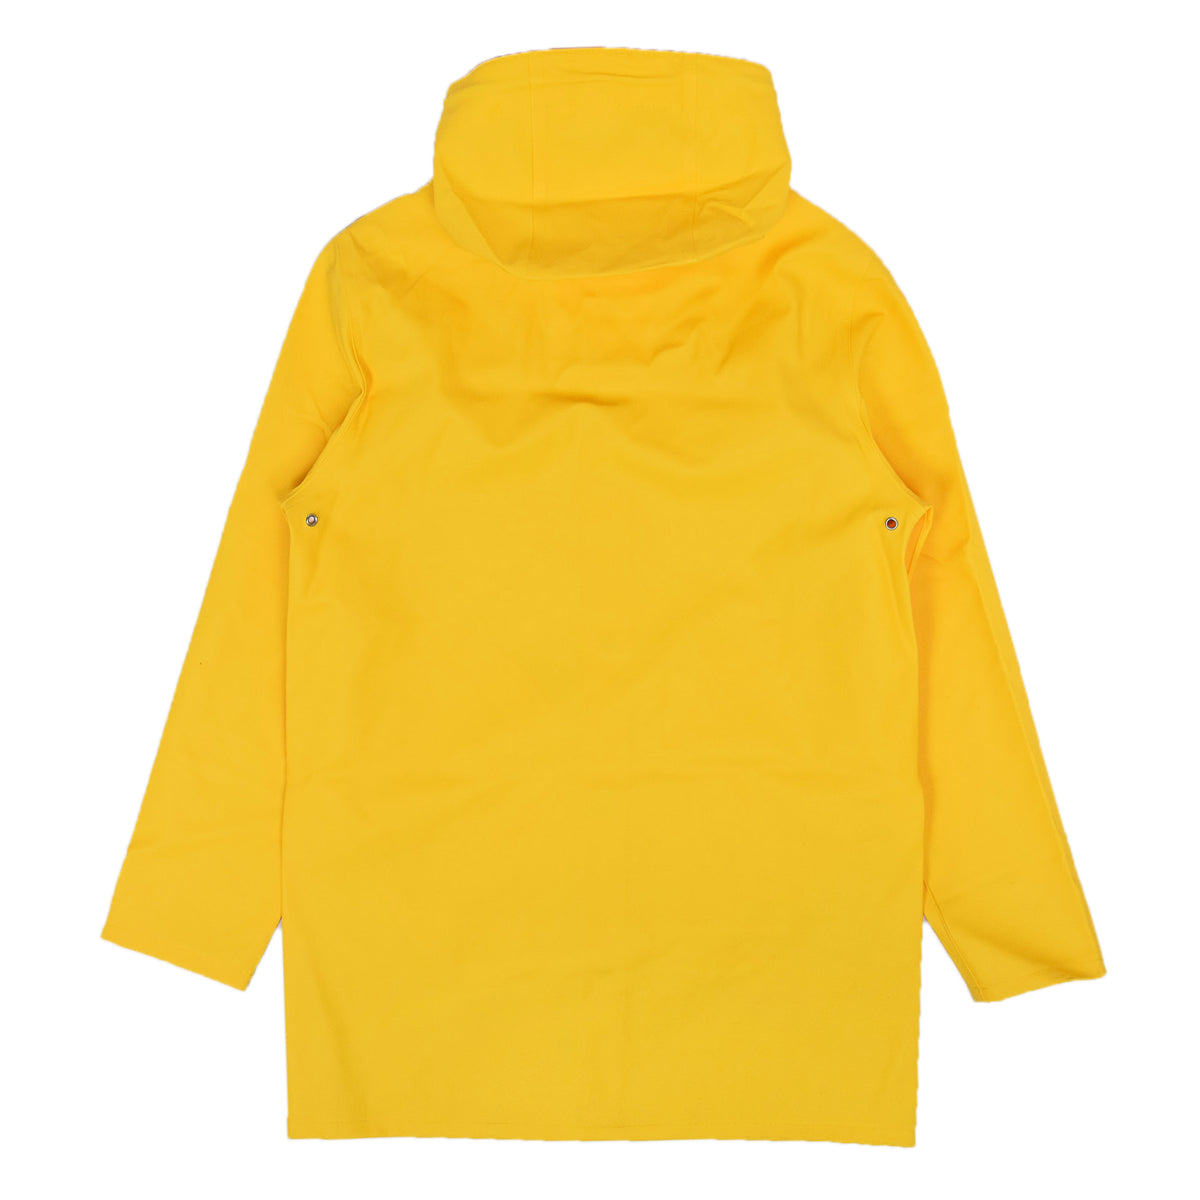 Stutterheim Stockholm Rubberised Raincoat Jacket Yellow Back